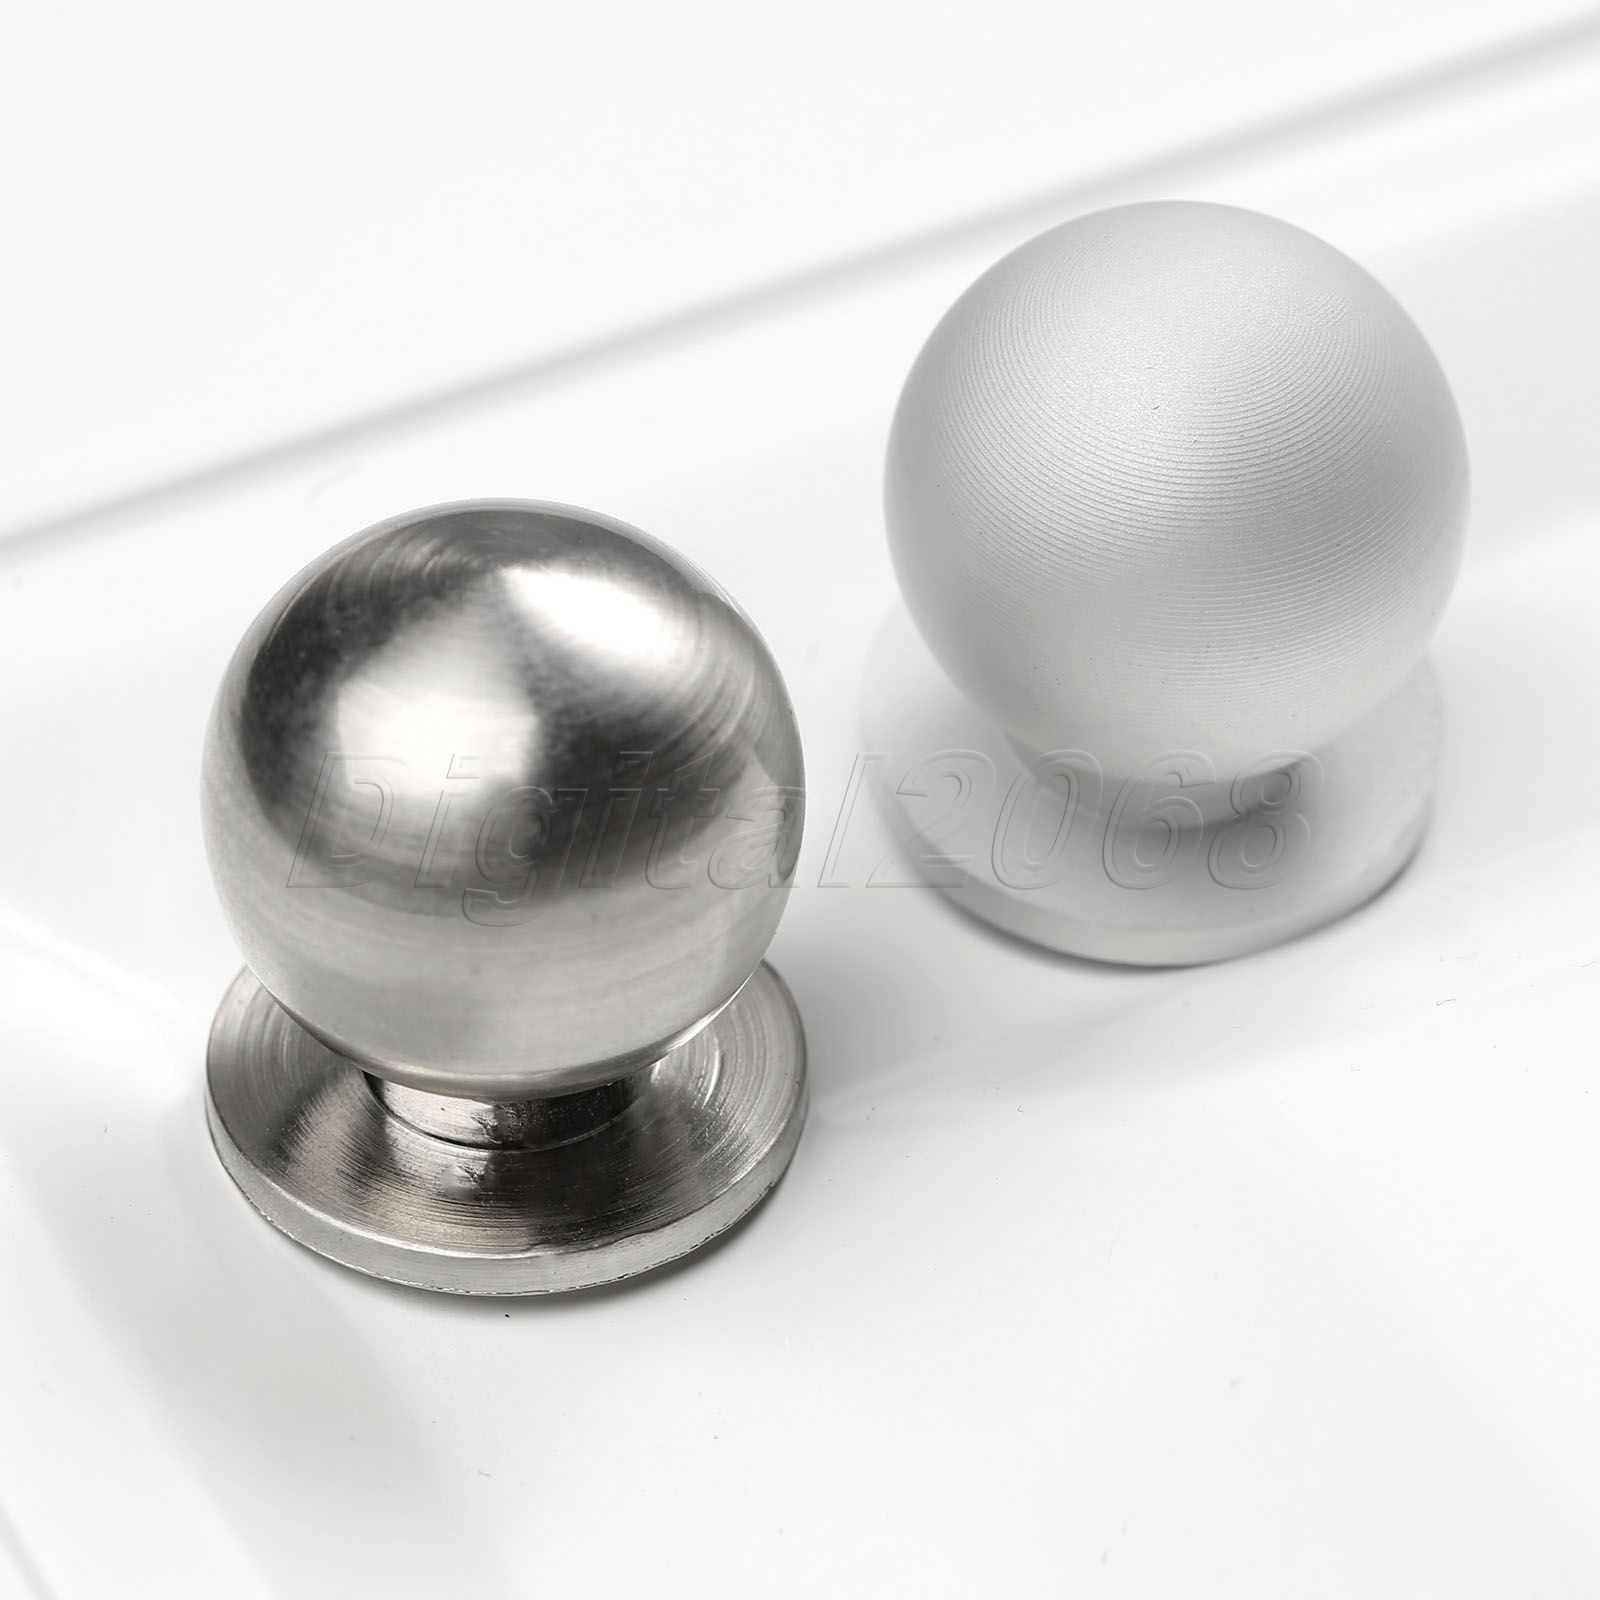 Hot New Silver Round Metal Furniture Cabinet Tone Door Drawer Cabinet Wardrobe Cupboard Ball Pull Handle Knobs furniture drawer handles wardrobe door handle and knobs cabinet kitchen hardware pull gold silver long hole spacing c c 96 224mm